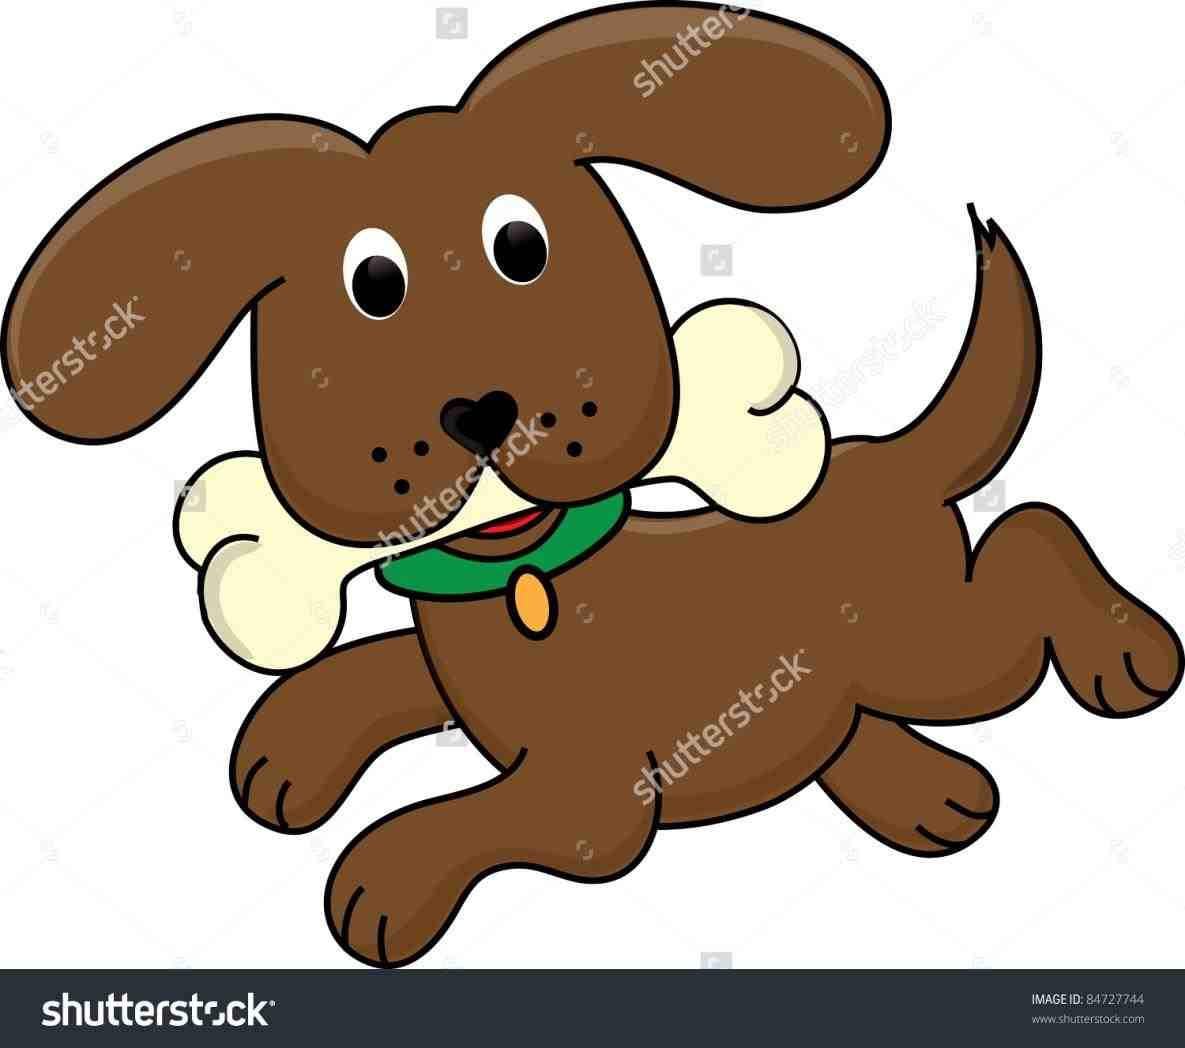 1185x1048 Christmas Dog Bone Clipart cheminee.website